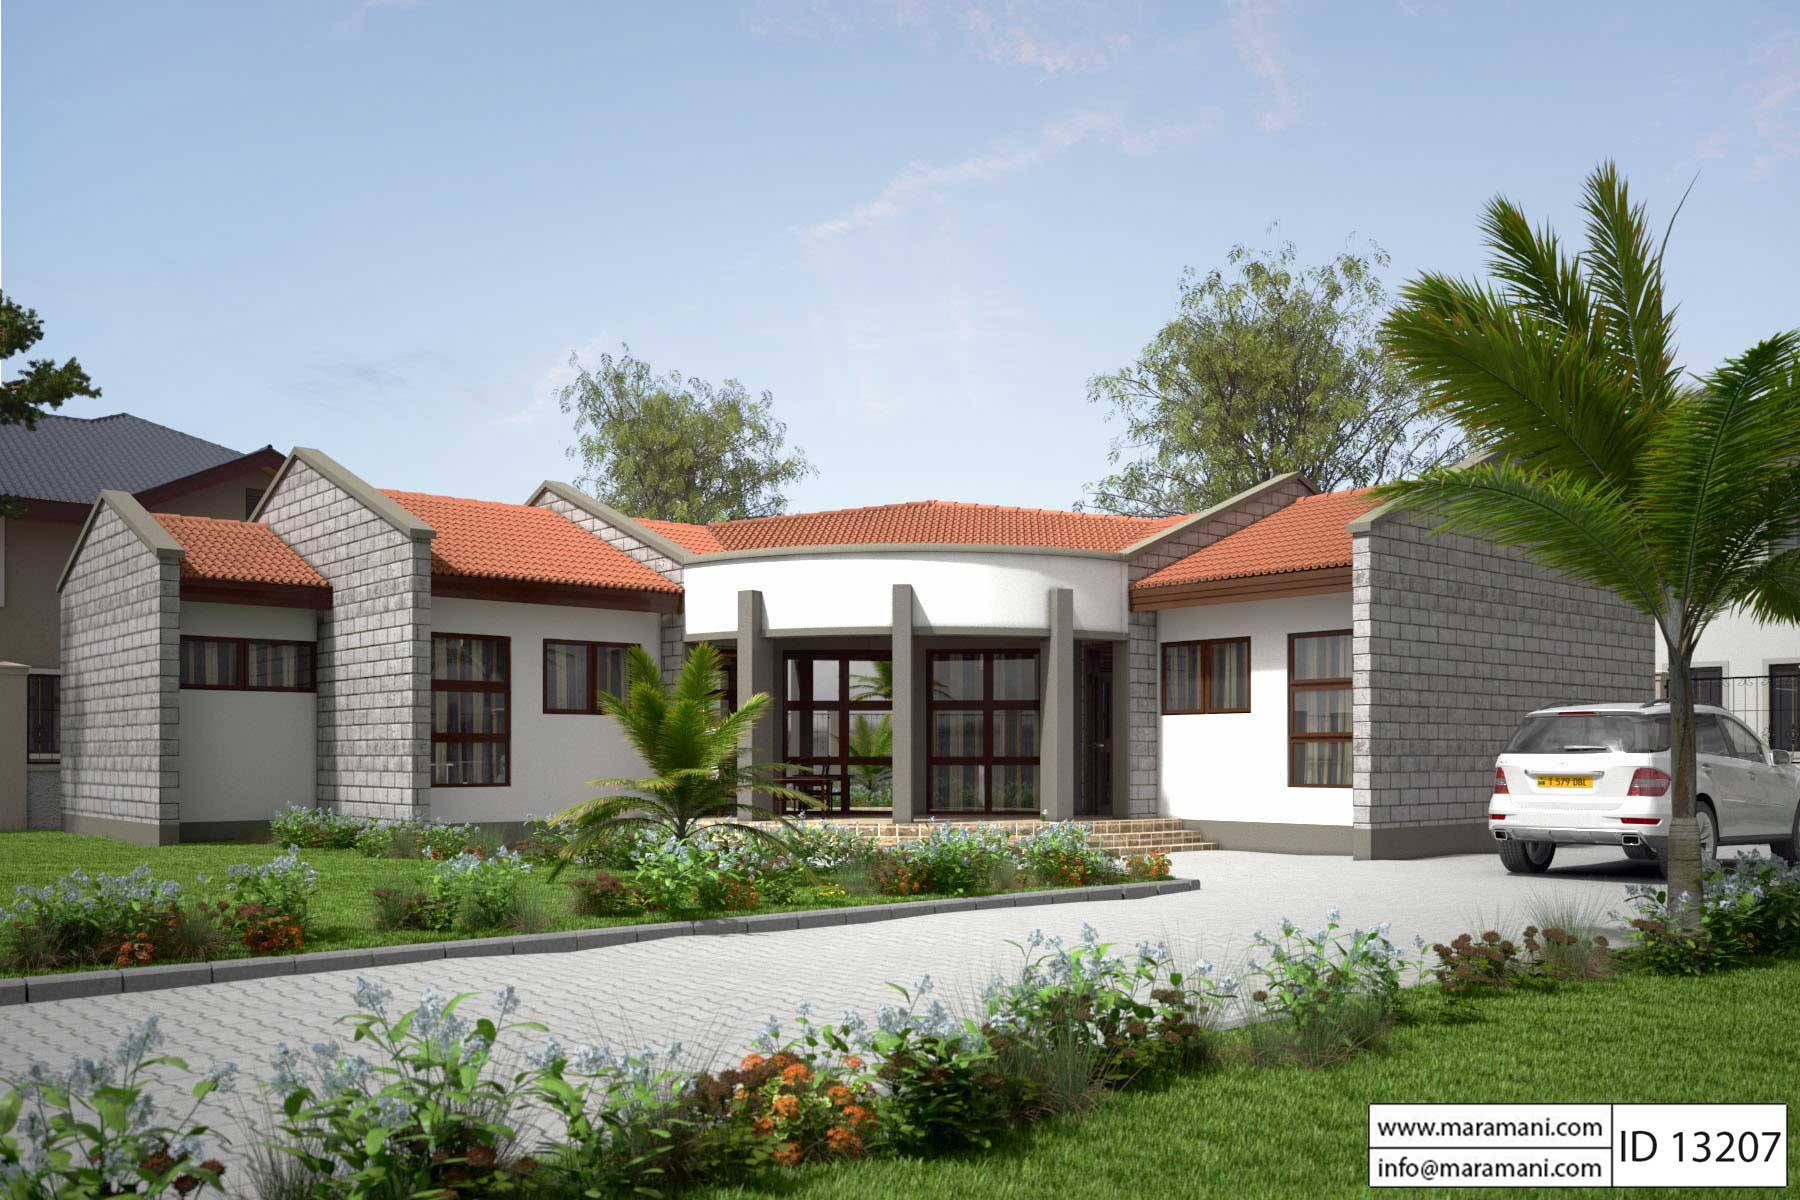 Low budget modern 3 bedroom house design id 13207 for New house plans